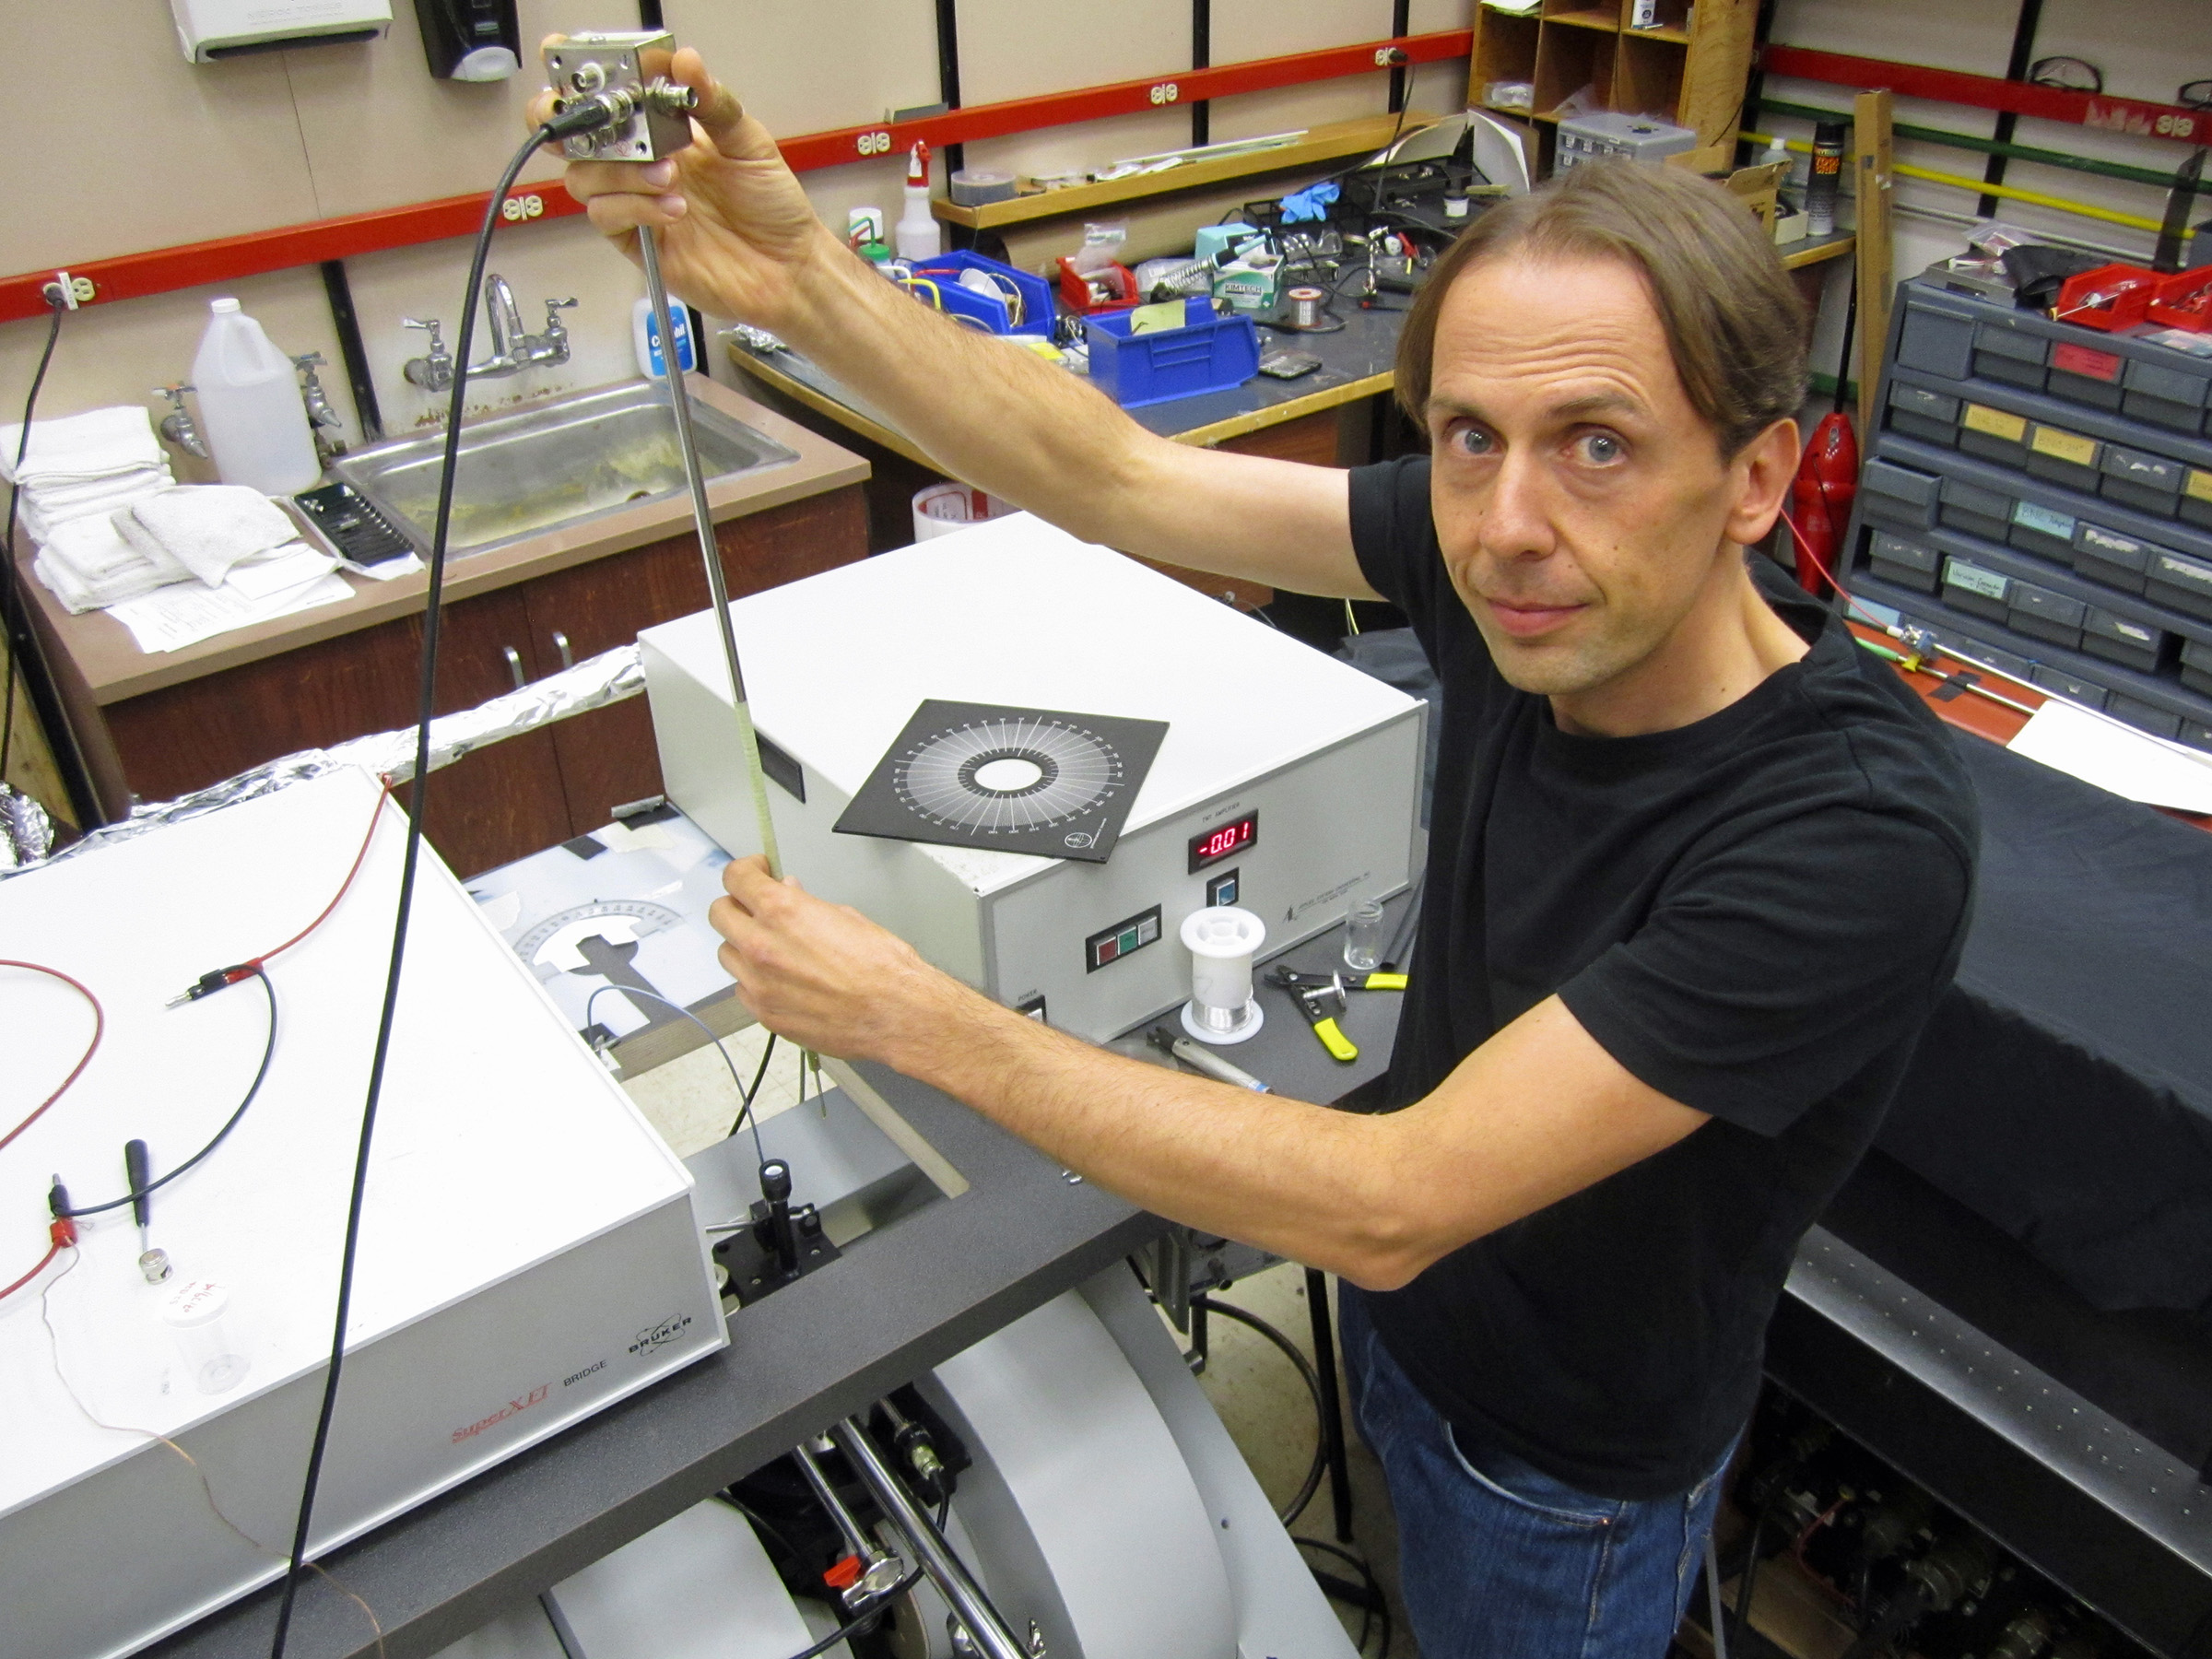 """University of Utah physicist Christoph Boehme works in his laboratory on an apparatus used in a new study that brings physics a step closer to """"spintronic"""" devices such as superfast computers, more compact data storage devices and more efficient organic LEDs or OLEDS than those used today for display screens in cell phones, computers and televisions. The study, published in the Sept. 19 issue of the journal Science, showed the physicists could read the subatomic """"spins"""" in hydrogen nuclei and use the data to control current that powers light in a cheap, plastic LED, or OLED, under practical operating conditions."""